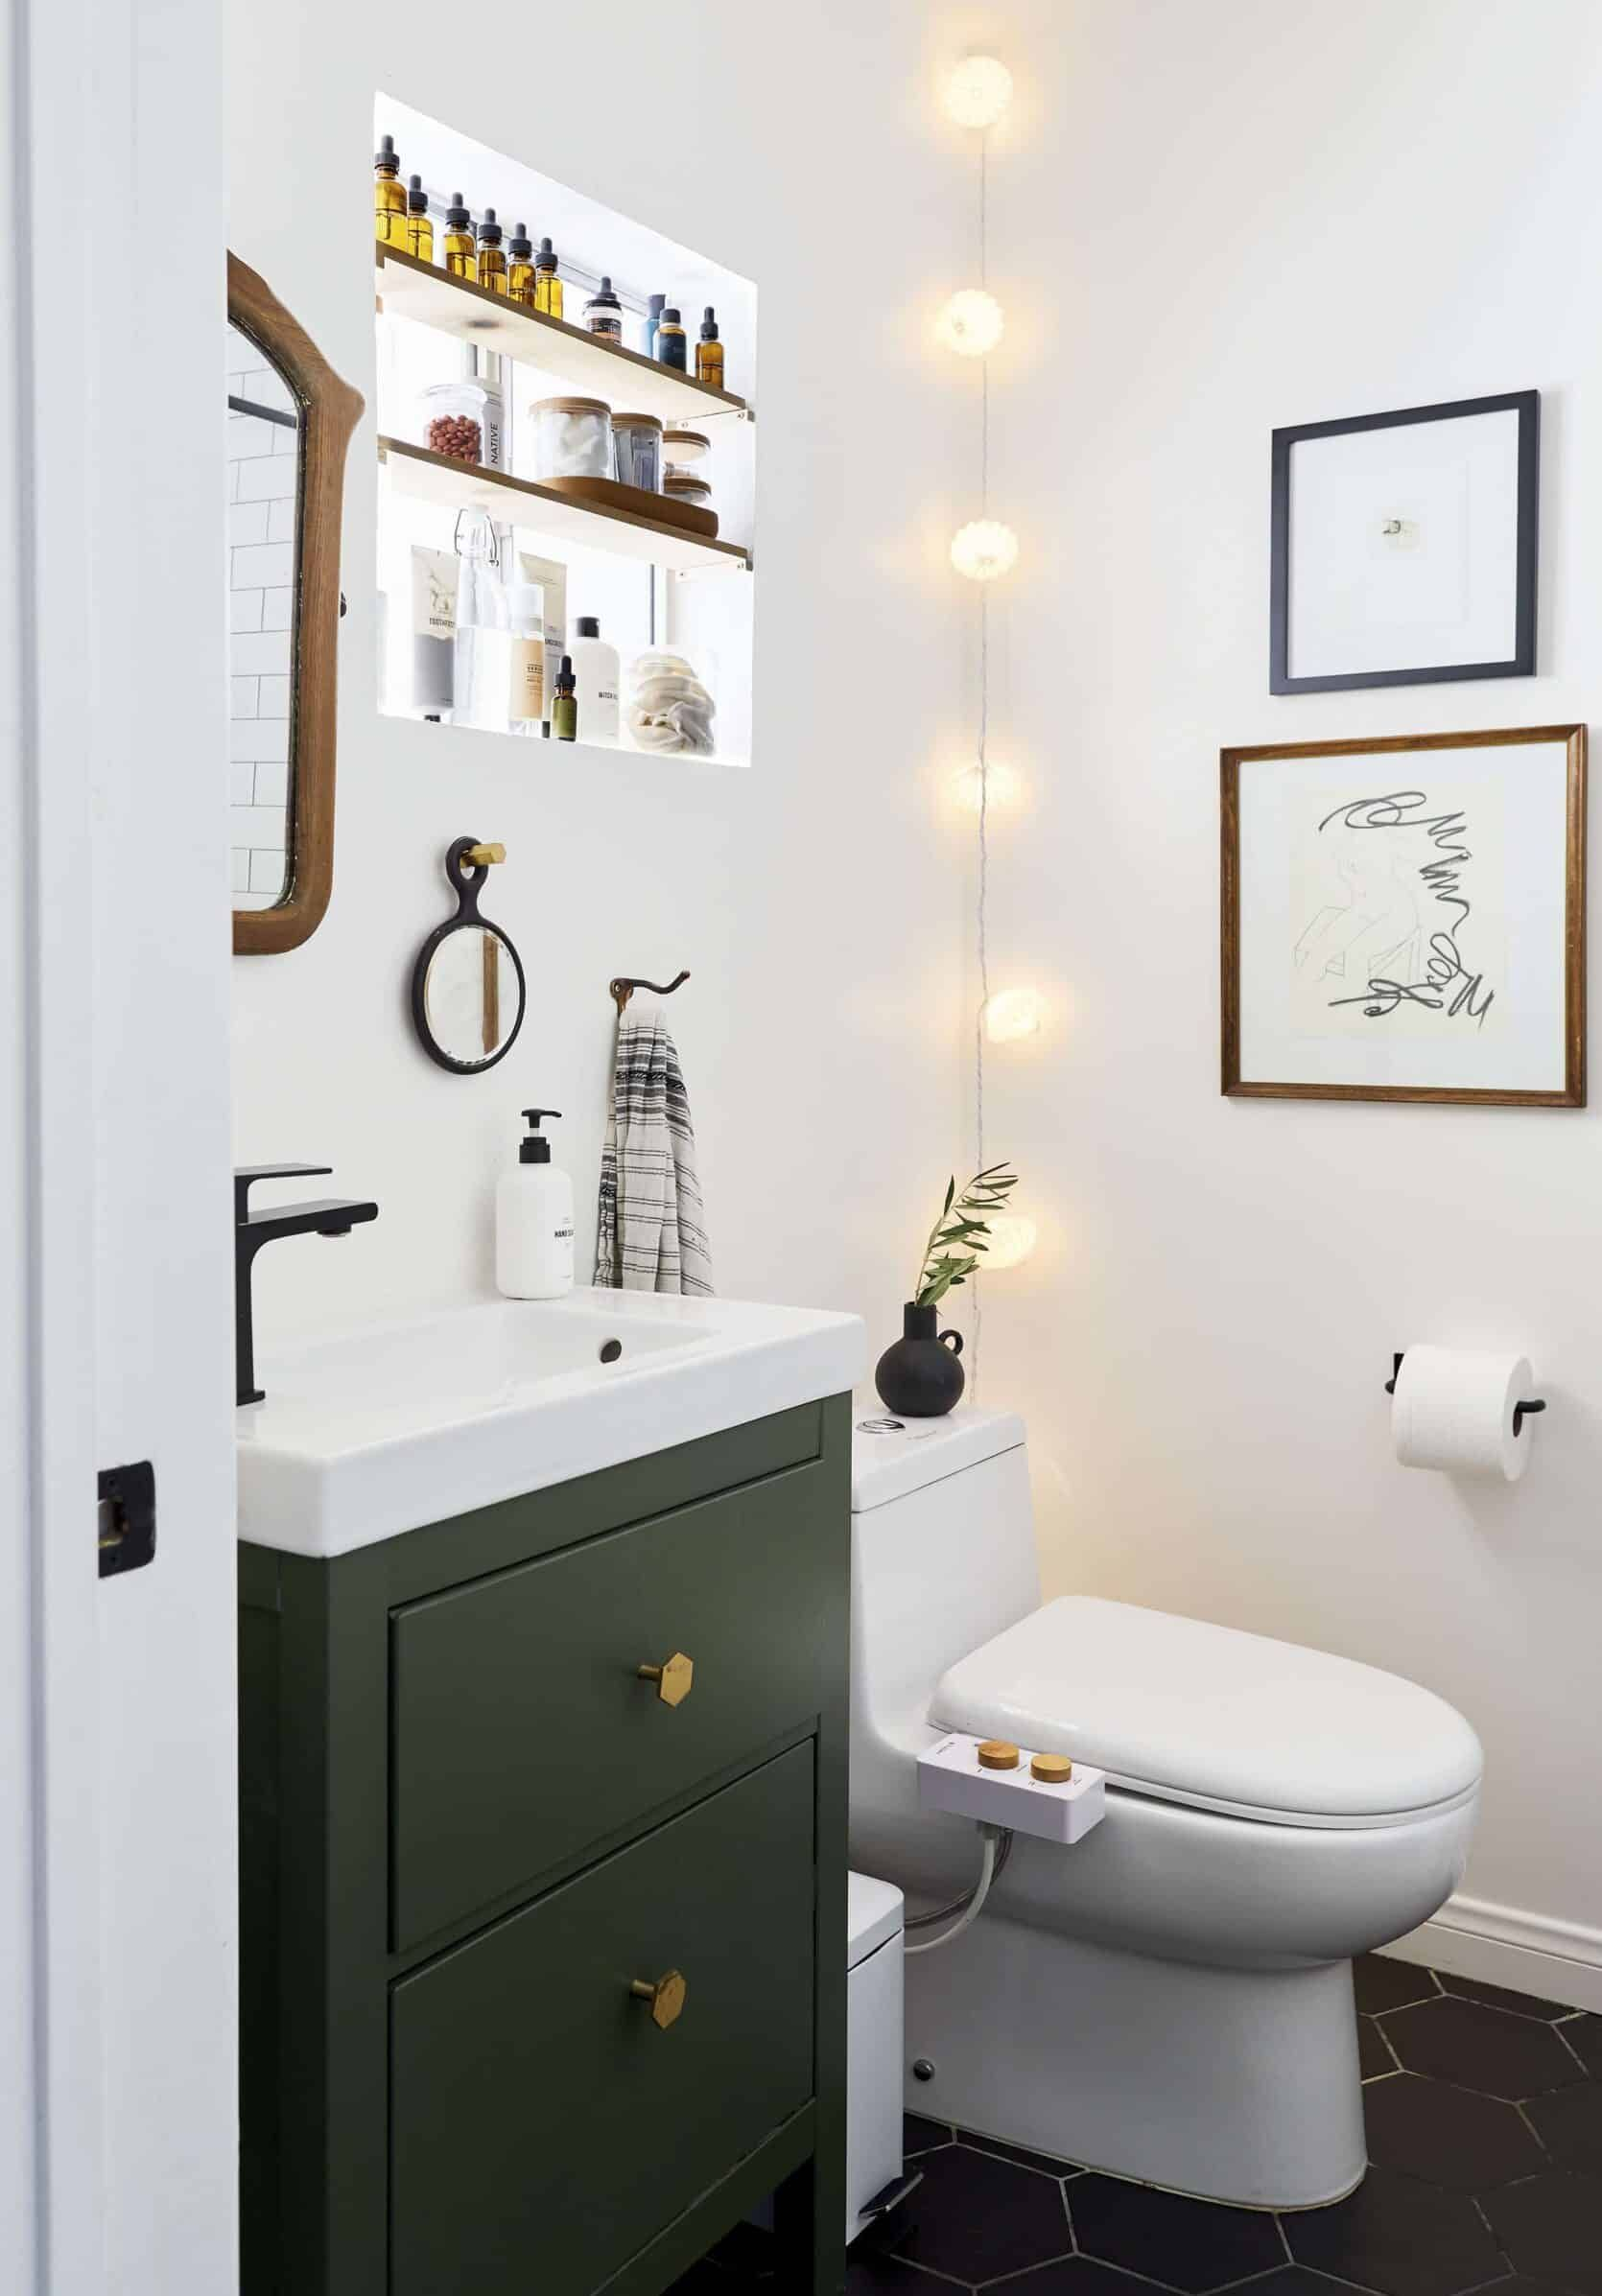 Our Go To Cabinet Hardware Placement 60 Of Our Shoppable Favorites Emily Henderson In 2020 Small Space Hacks Bathroom Interior Small Bathroom